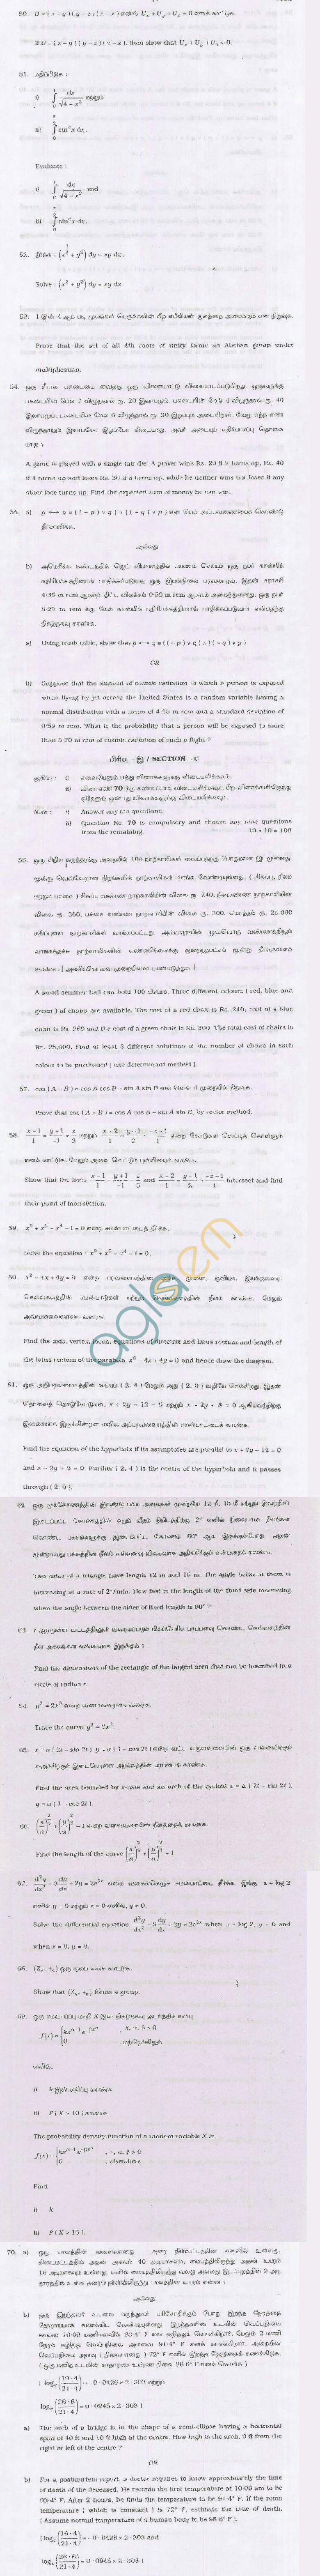 TN Board Higher Secondary (Plus 2) Mathematics Question Papers June 2011